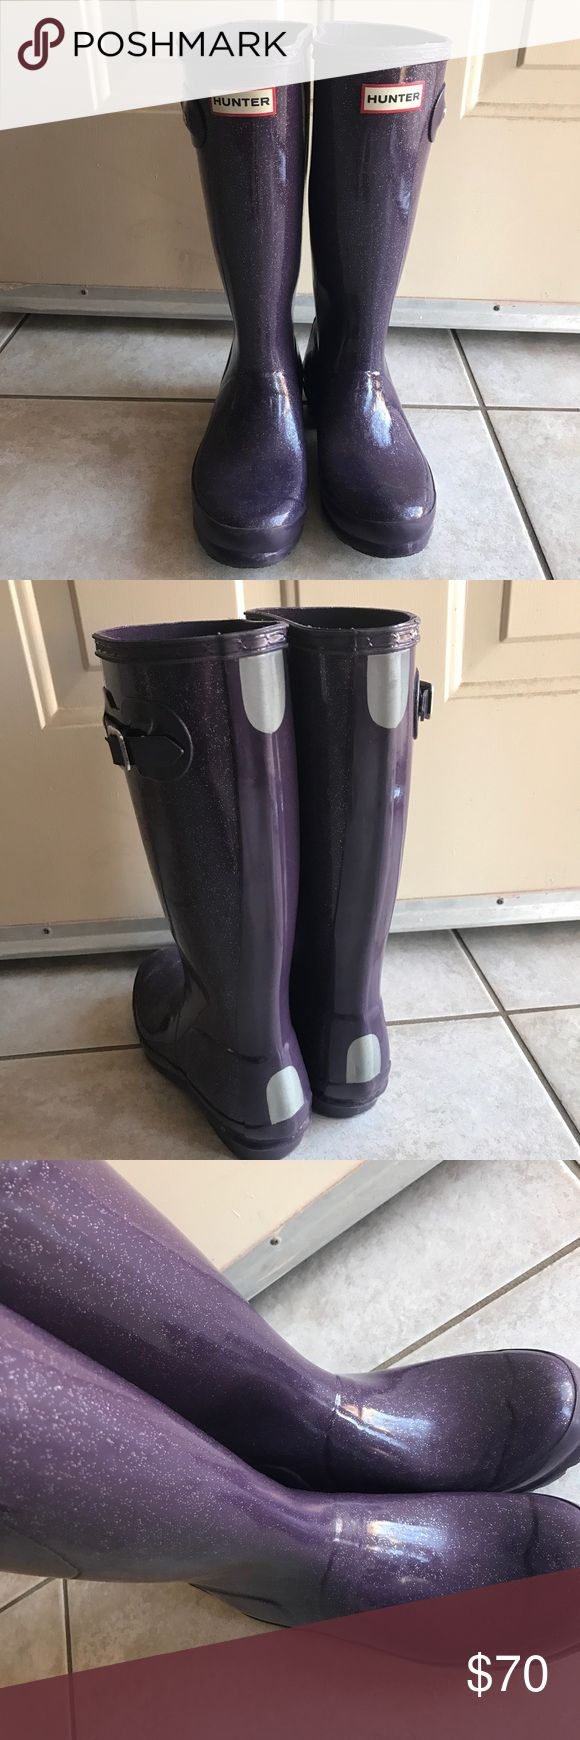 Big kids Hunter Rain Boot Original Hunter Boot with Bright Violet Glitter finish. Used but great condition, only the straps on the bucket got little scratches. Big girl size 5, Will fit women size 6 Hunter Boots Shoes Rain & Snow Boots